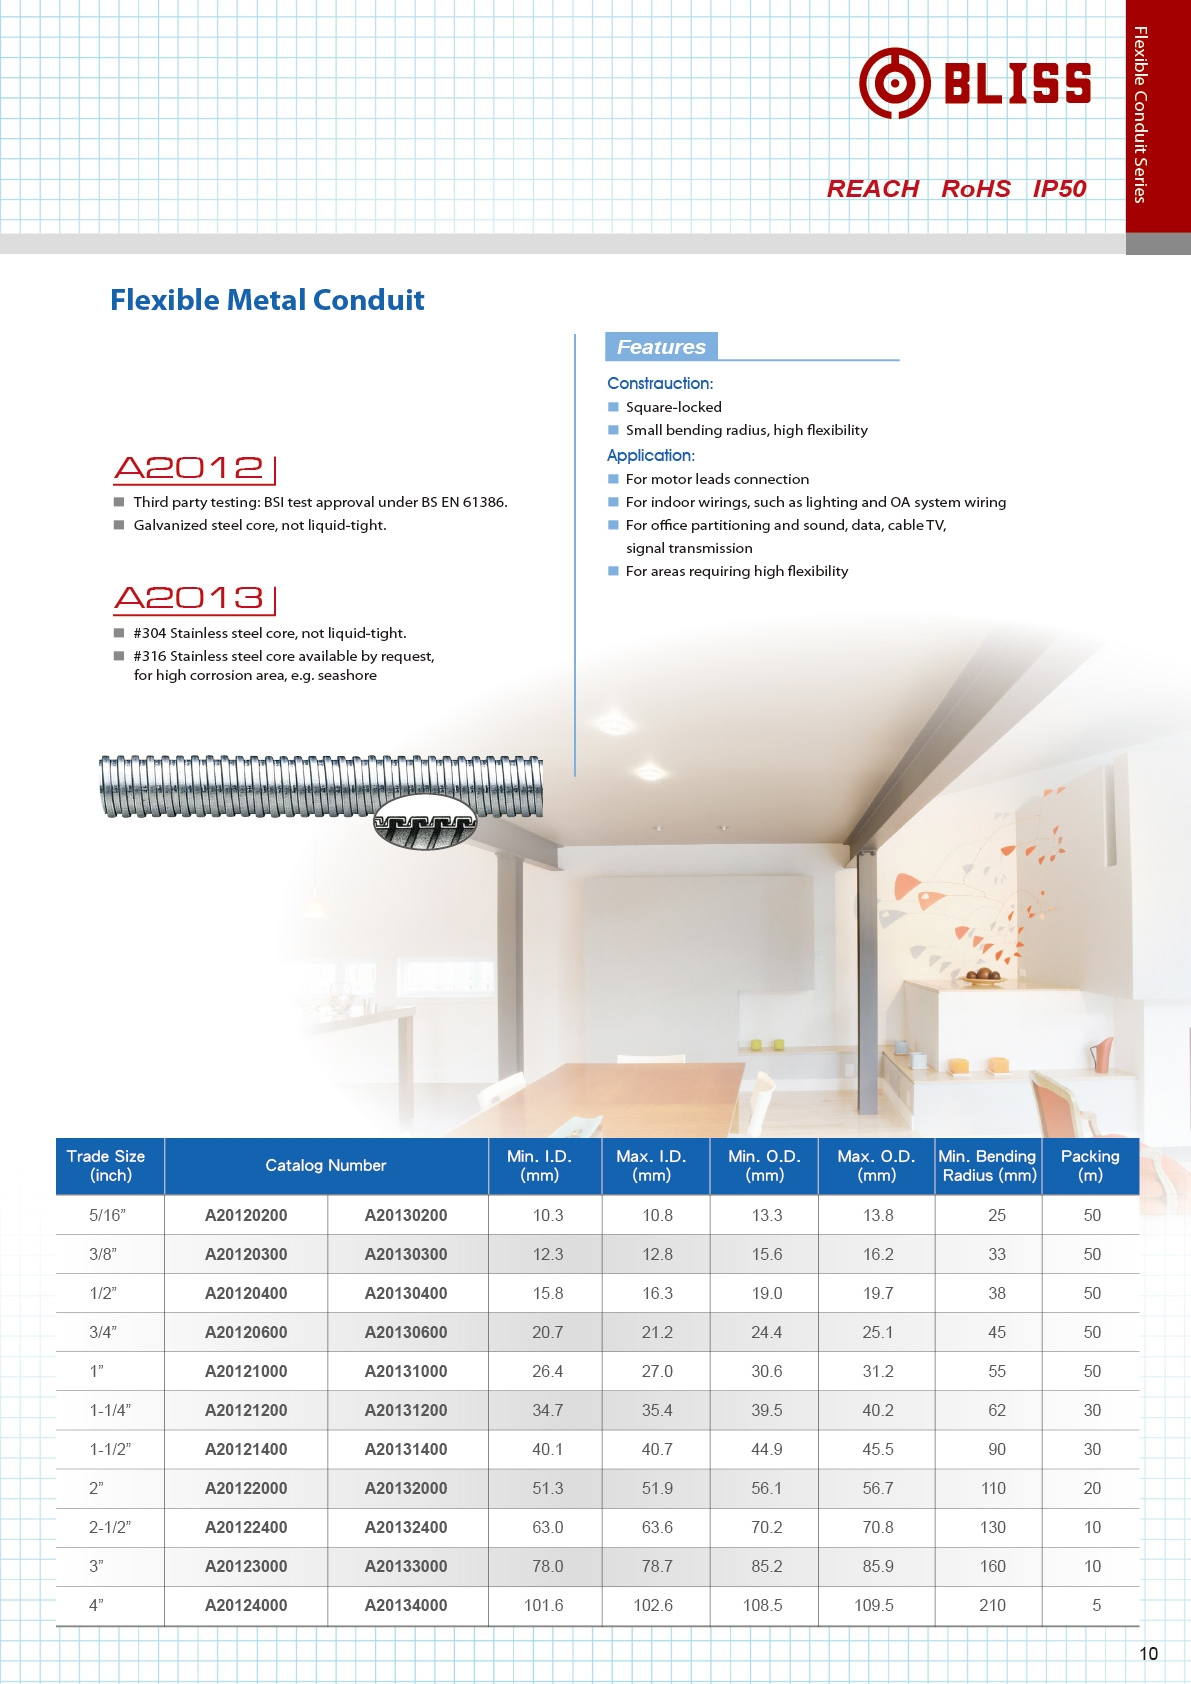 Taiwan Galvanized Steel Electrical Flexible Conduit Bliss Yih For Wire Buy Metal Liquid Light P10 A2012 A20071mb